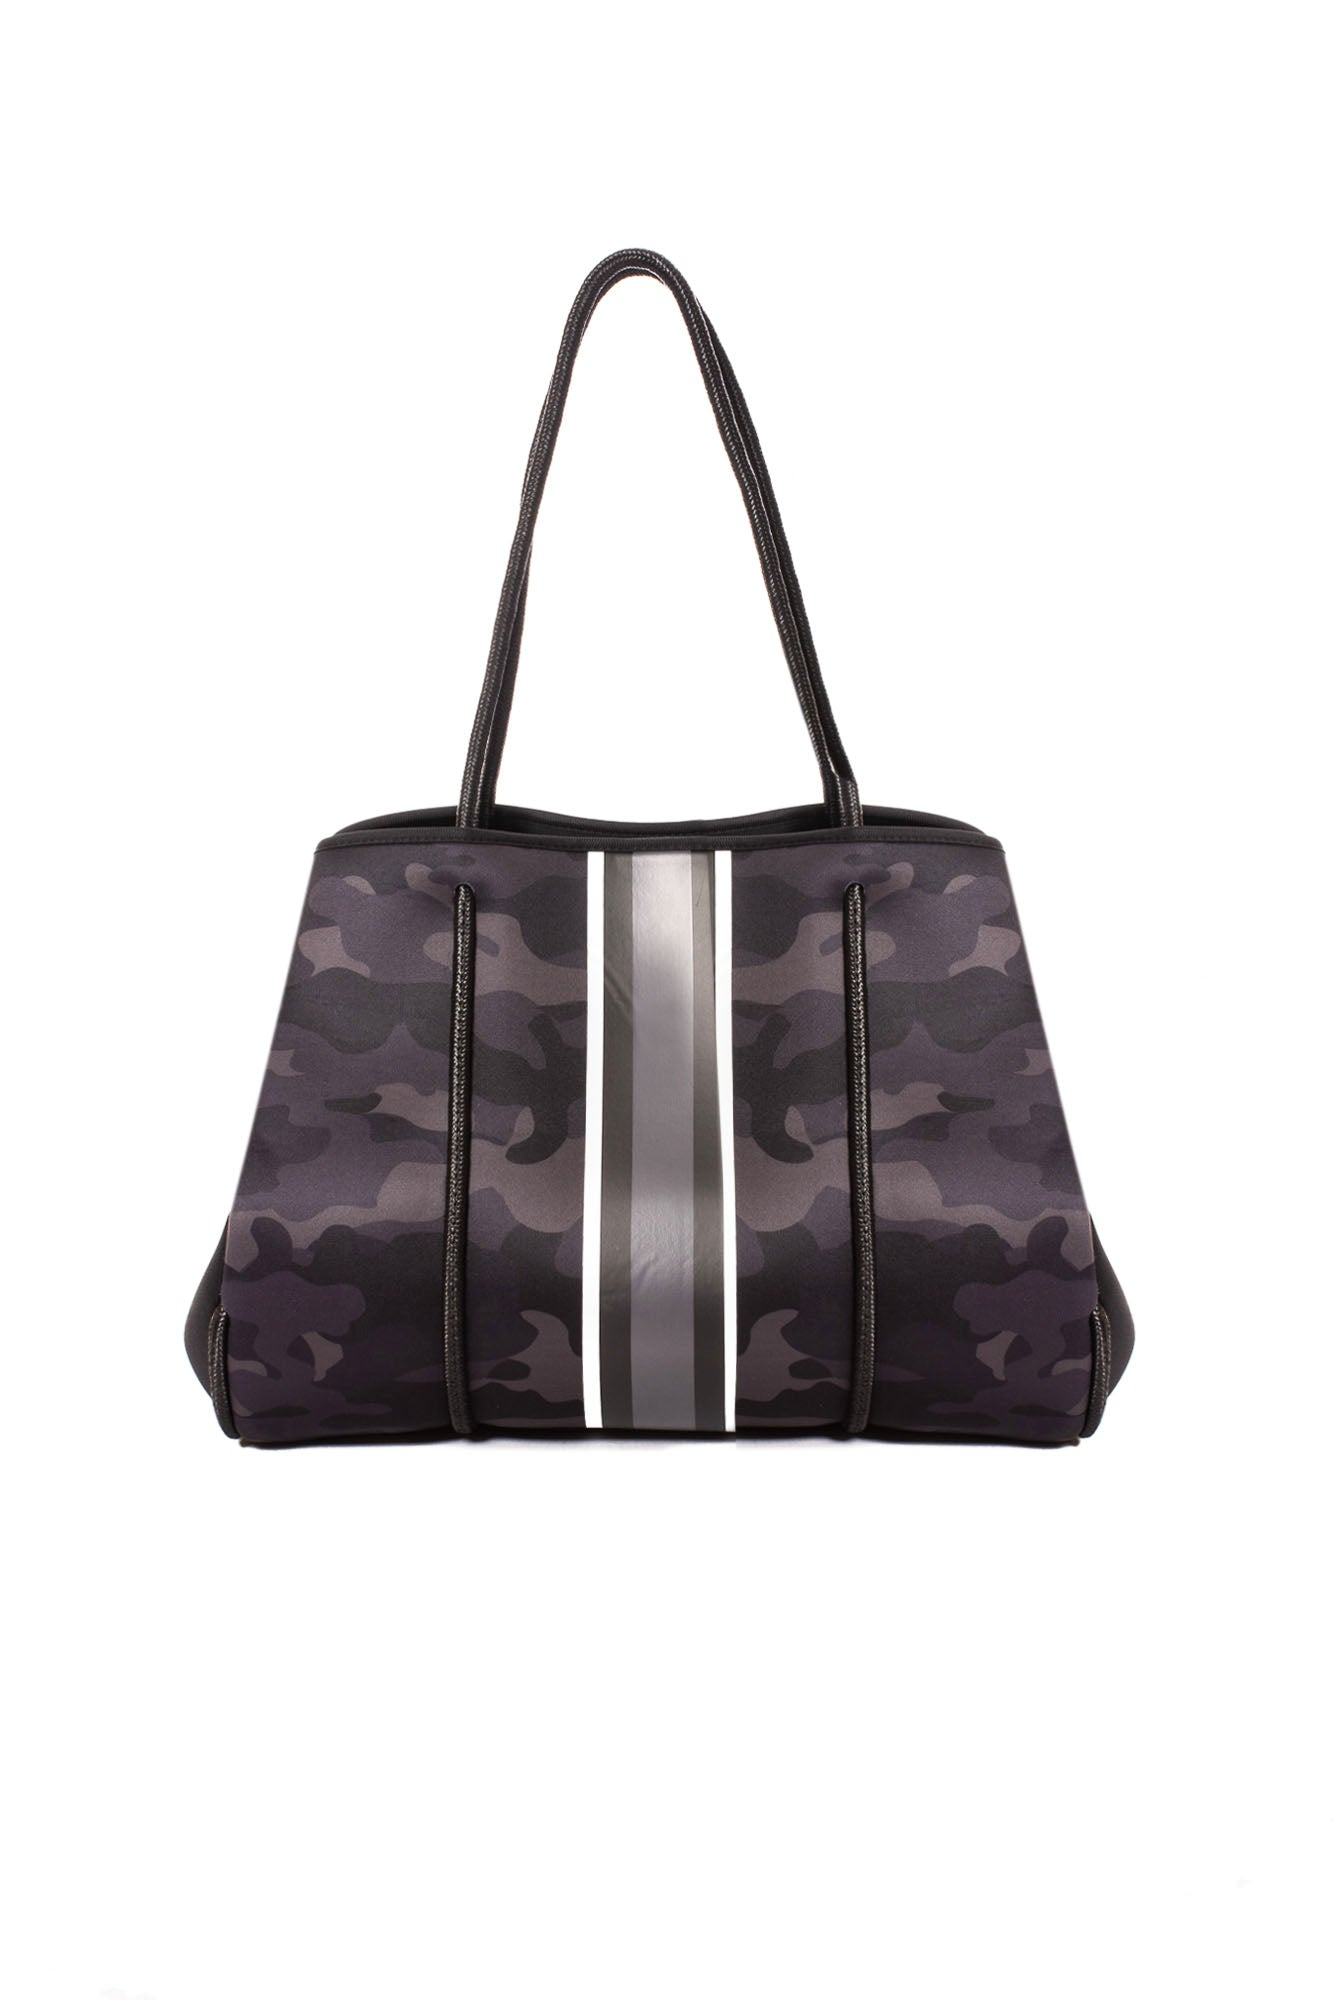 Haute Shore - Elite Neoprene Tote Bag w/Zipper Wristlet Inside (Greyson, Black Camo w/Black & White Stripe)